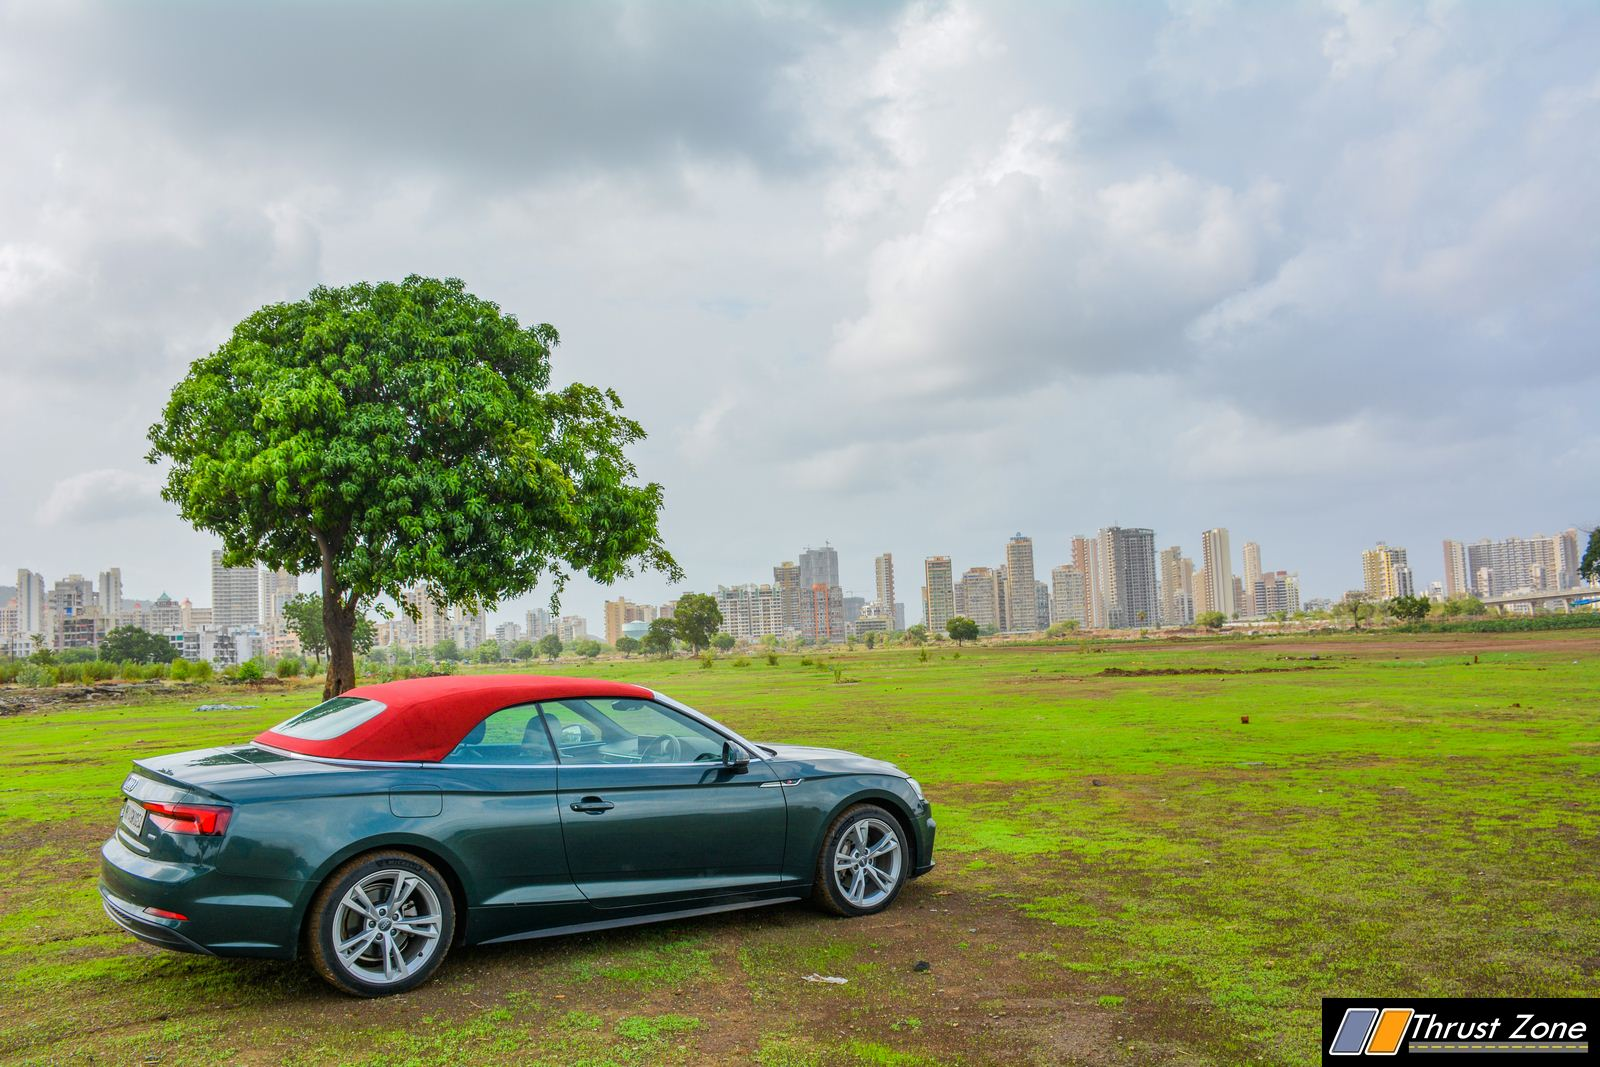 https://www.thrustzone.com/wp-content/uploads/2019/06/2019-Audi-A5-Cabriolet-Convertible-India-Diesel-Review-8.jpg